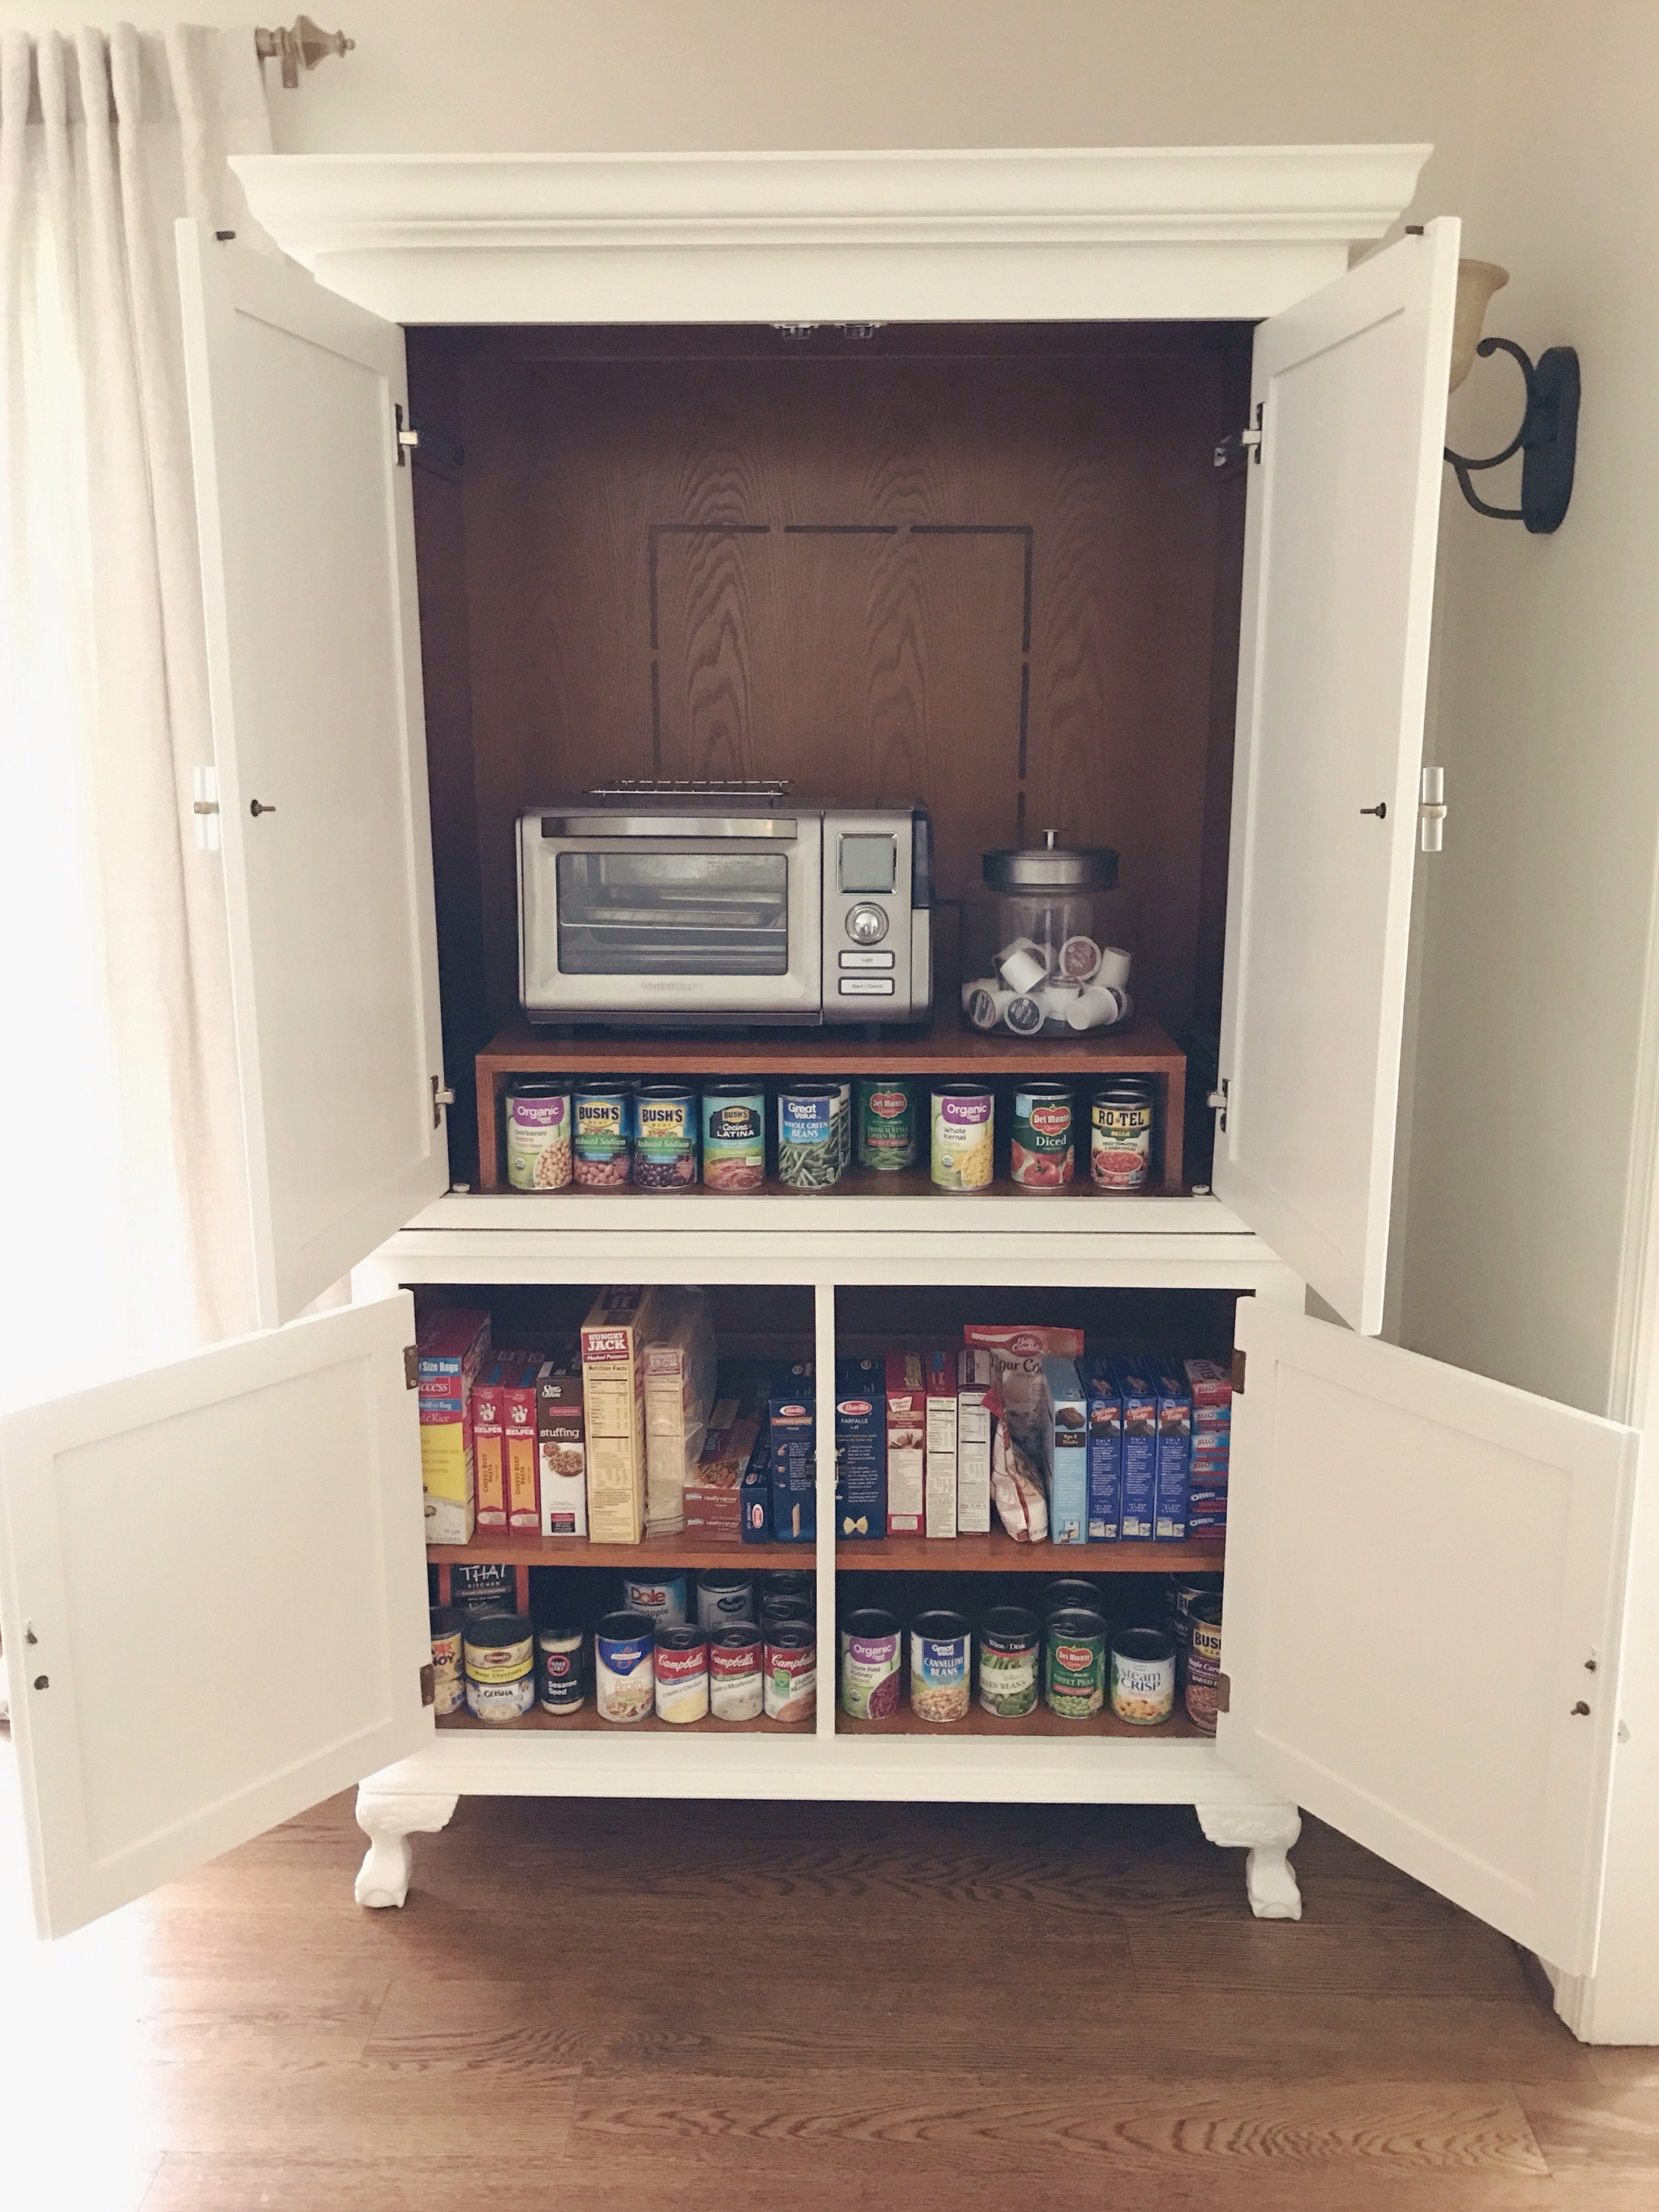 The armoire now holds all of our canned goods and boxed items, and hides our little oven. I have so much more cabinet space and can sort through things easily. Putting up groceries is no longer a pain, or as much of one anyway, haha!